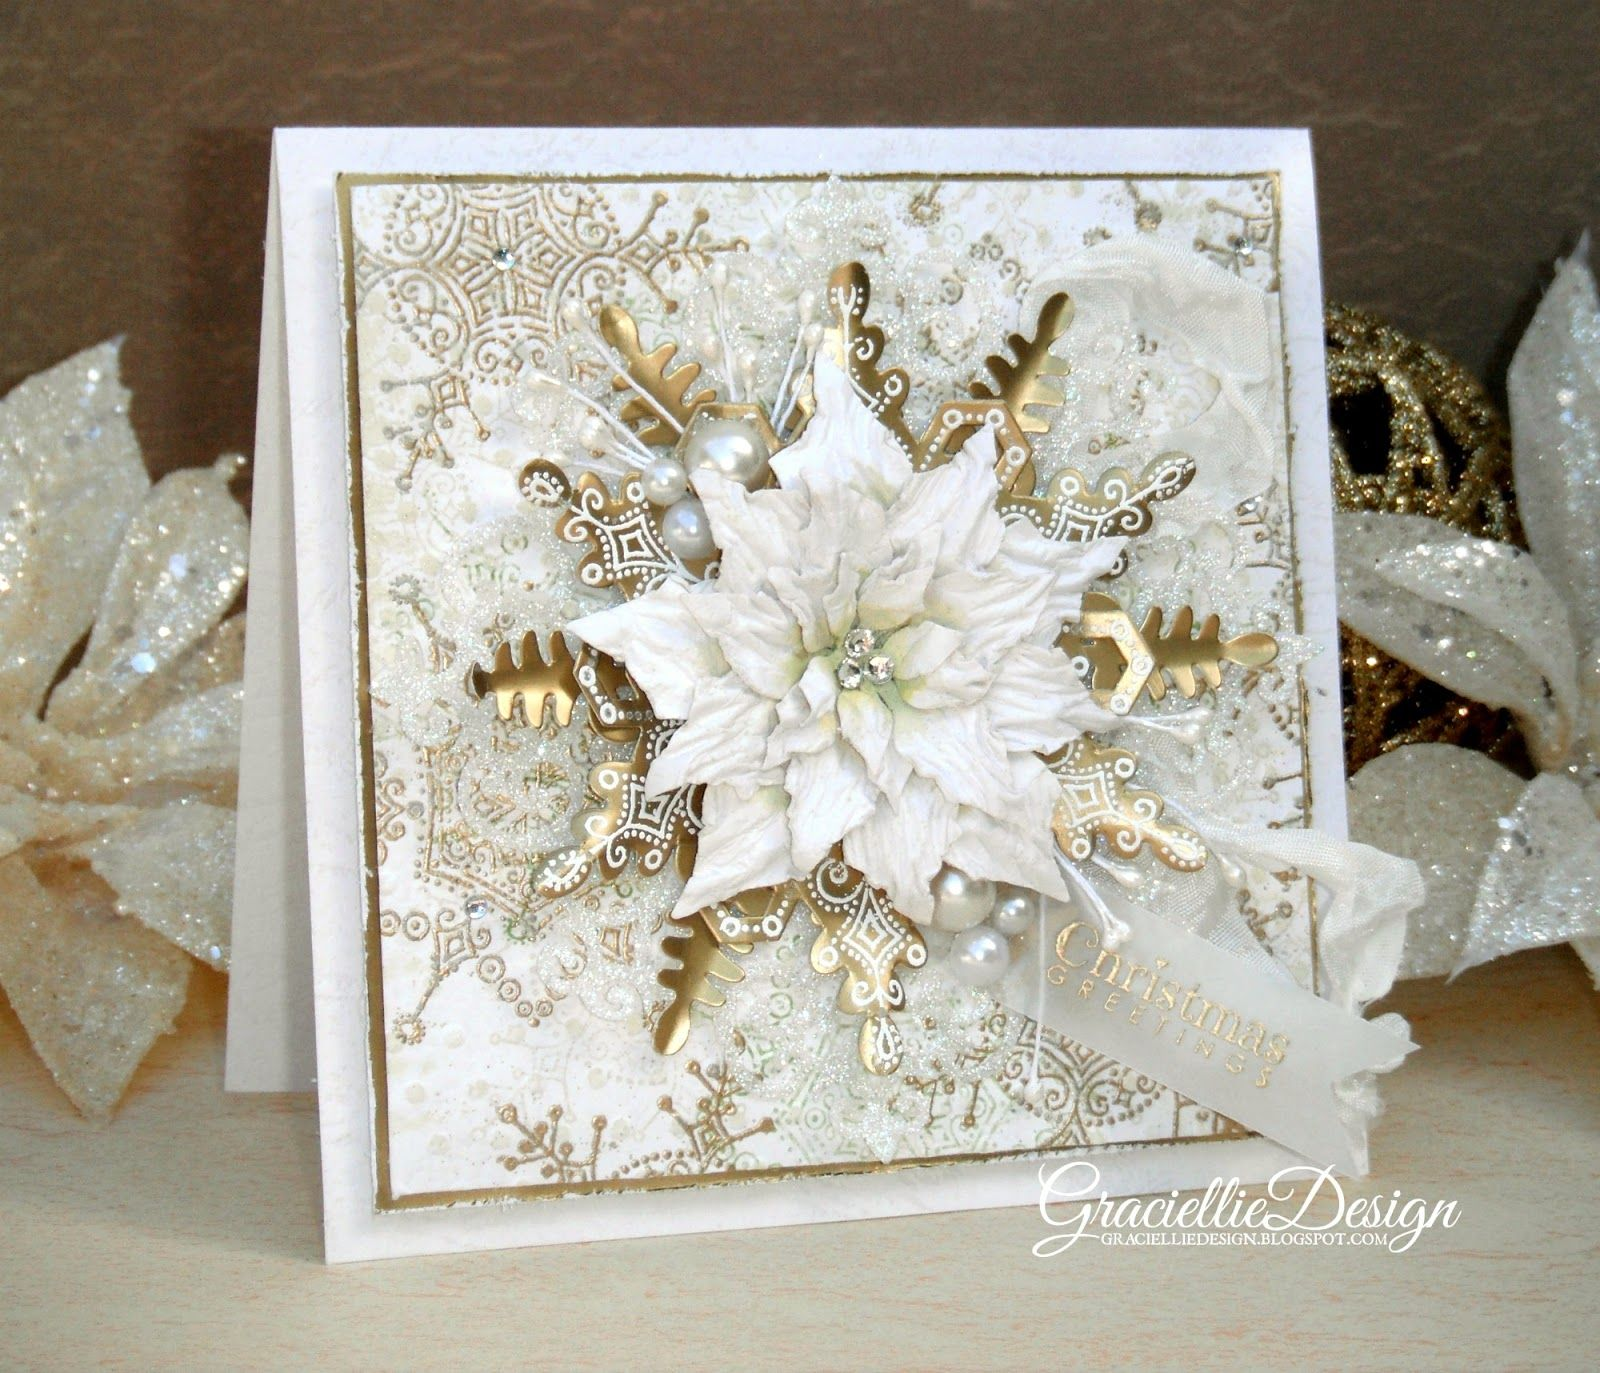 graciellie design dreaming of a white christmas gilded elegant christmas card - Elegant Christmas Cards